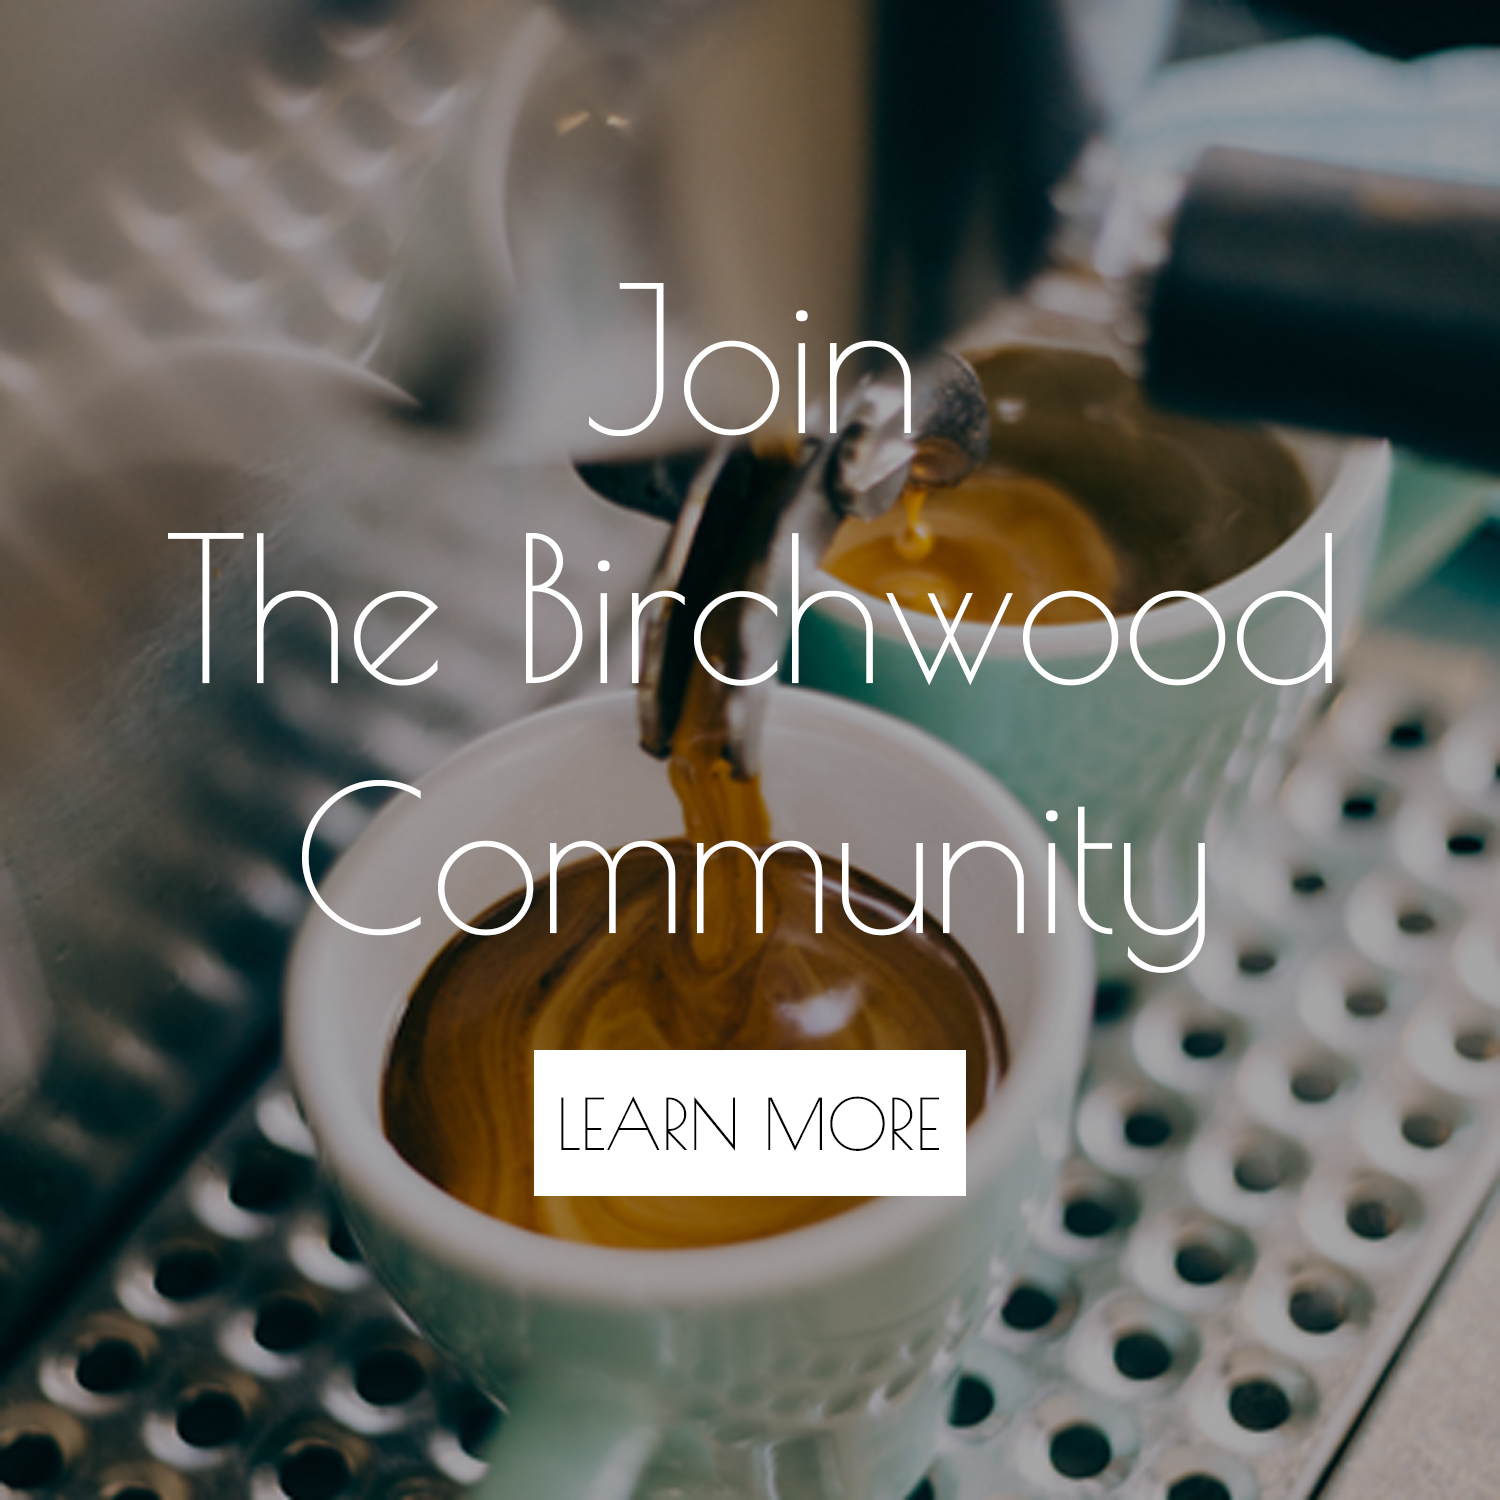 The Birchwood Espresso